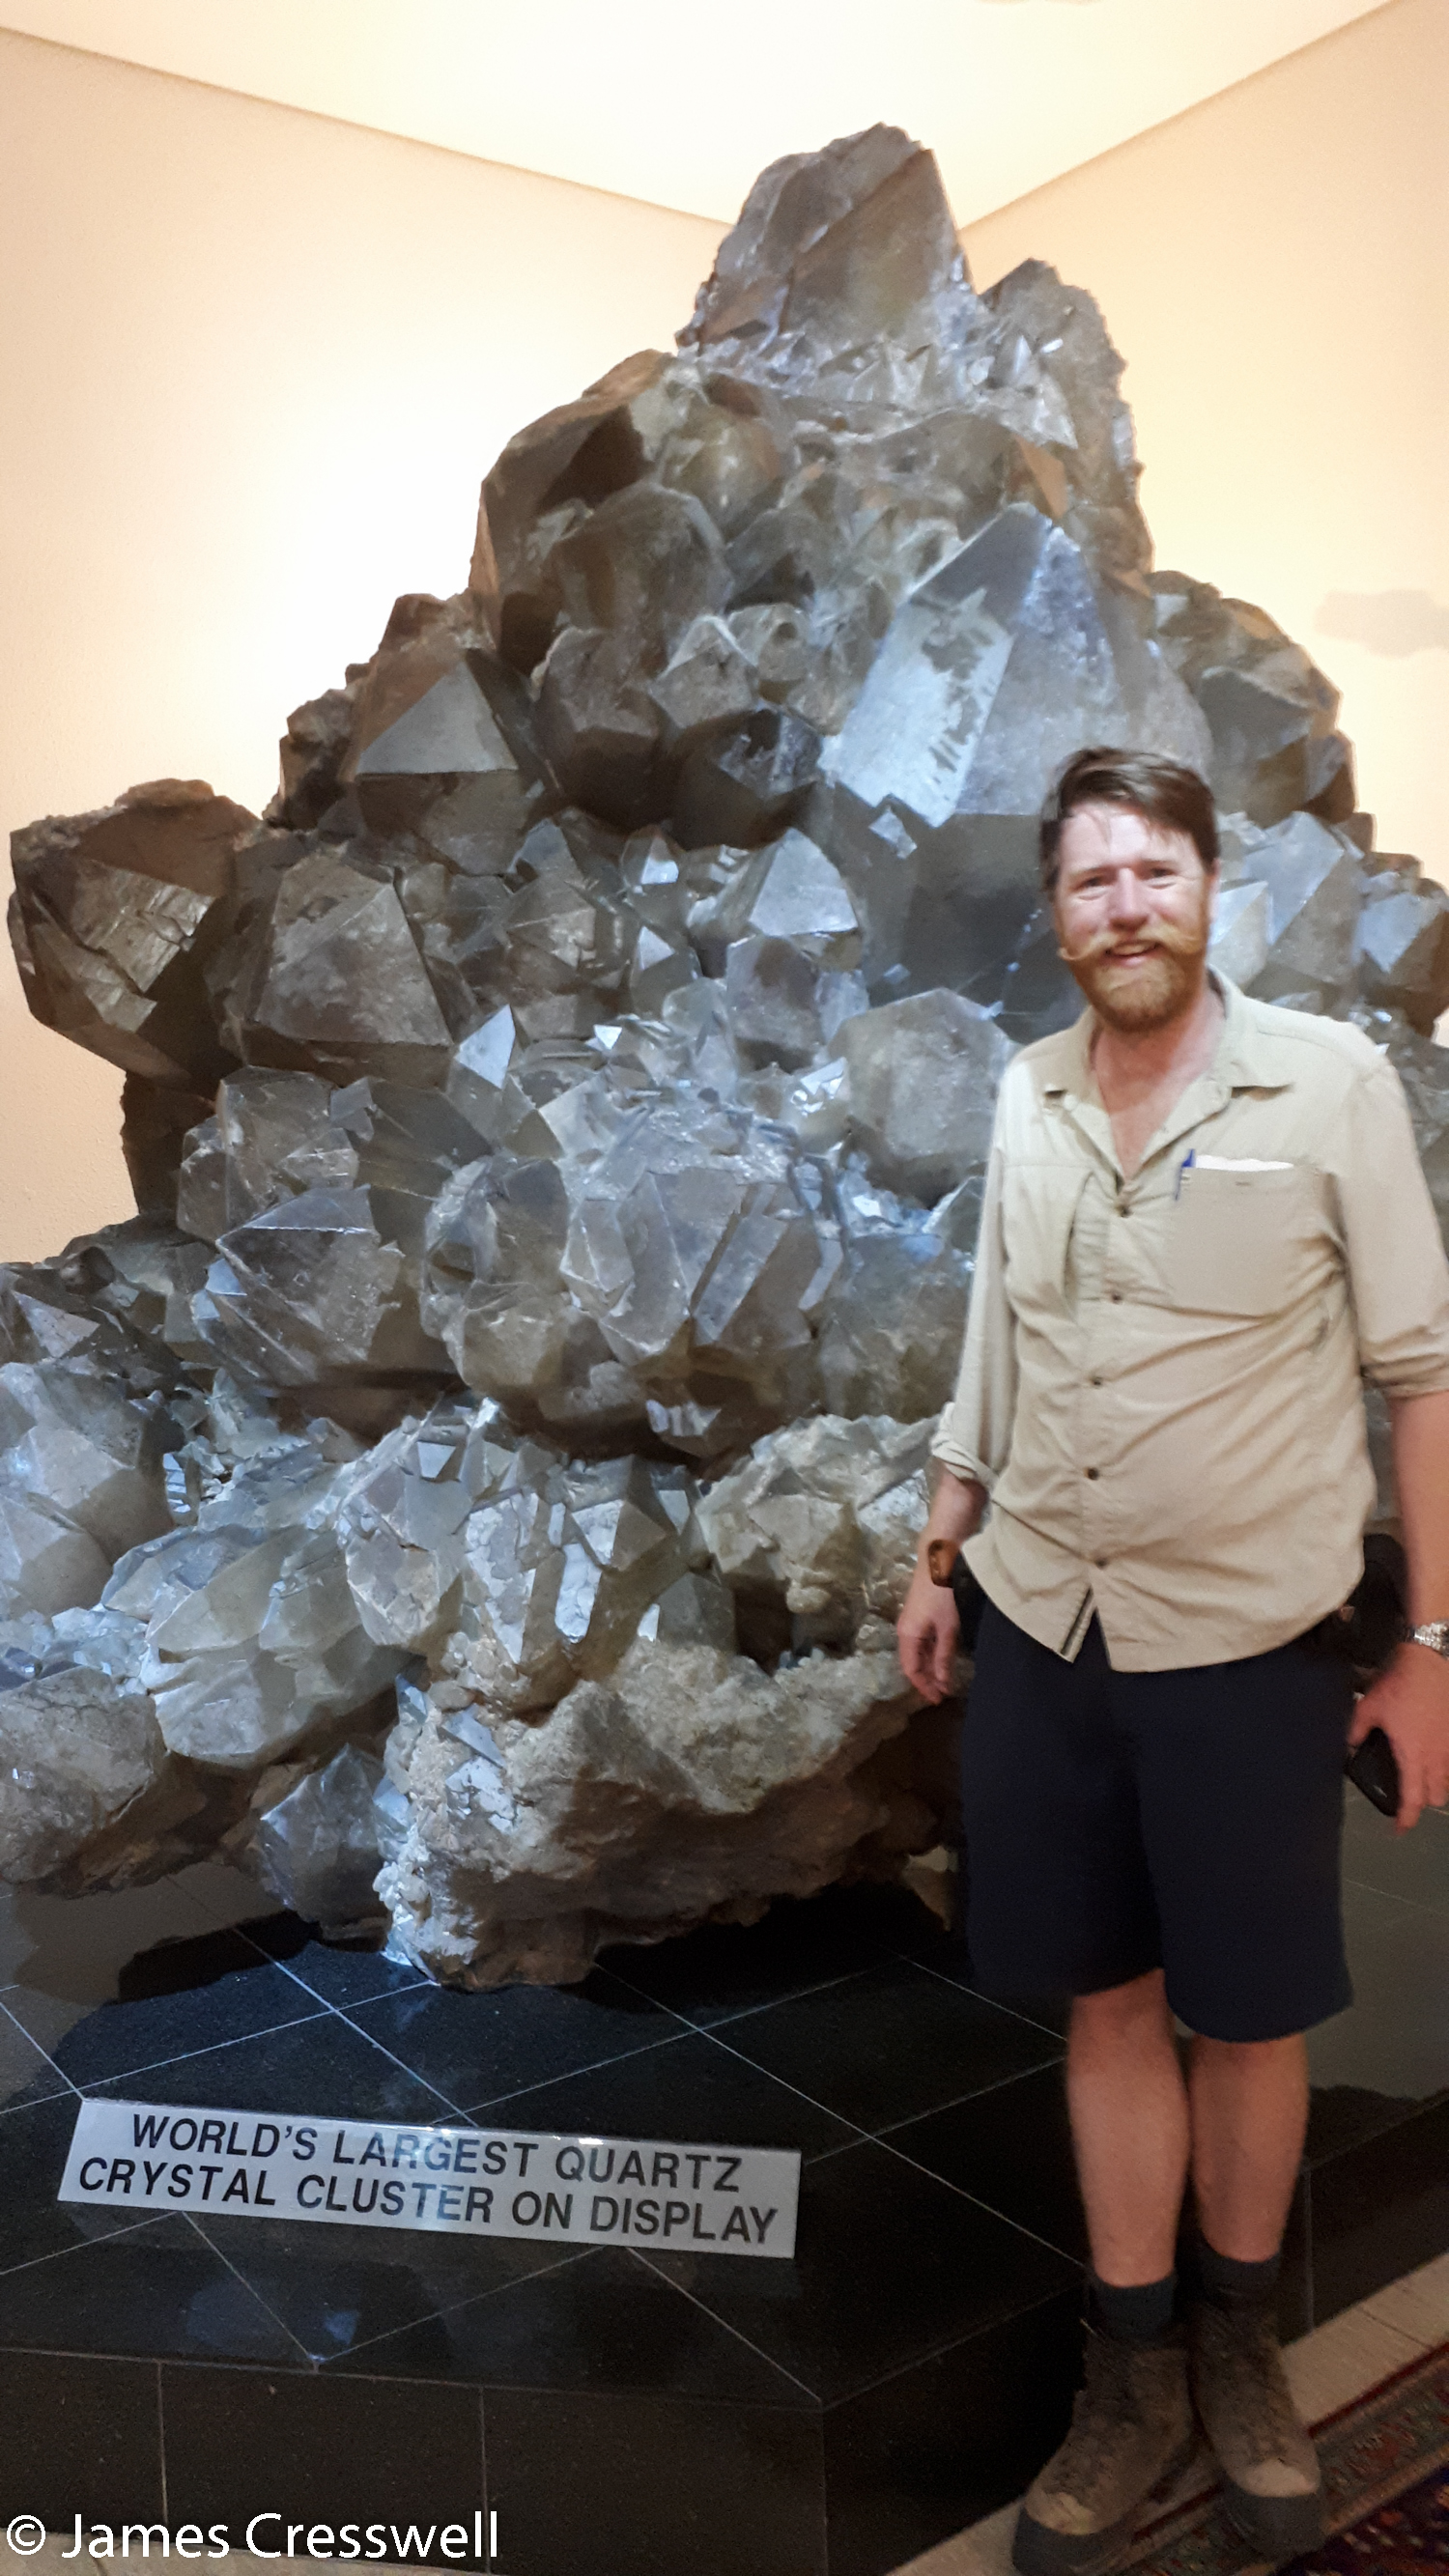 James Cresswell with the world's biggest quartz crystals that are on display, at the Kristall Gallerie, Swakopmund, Namibia.